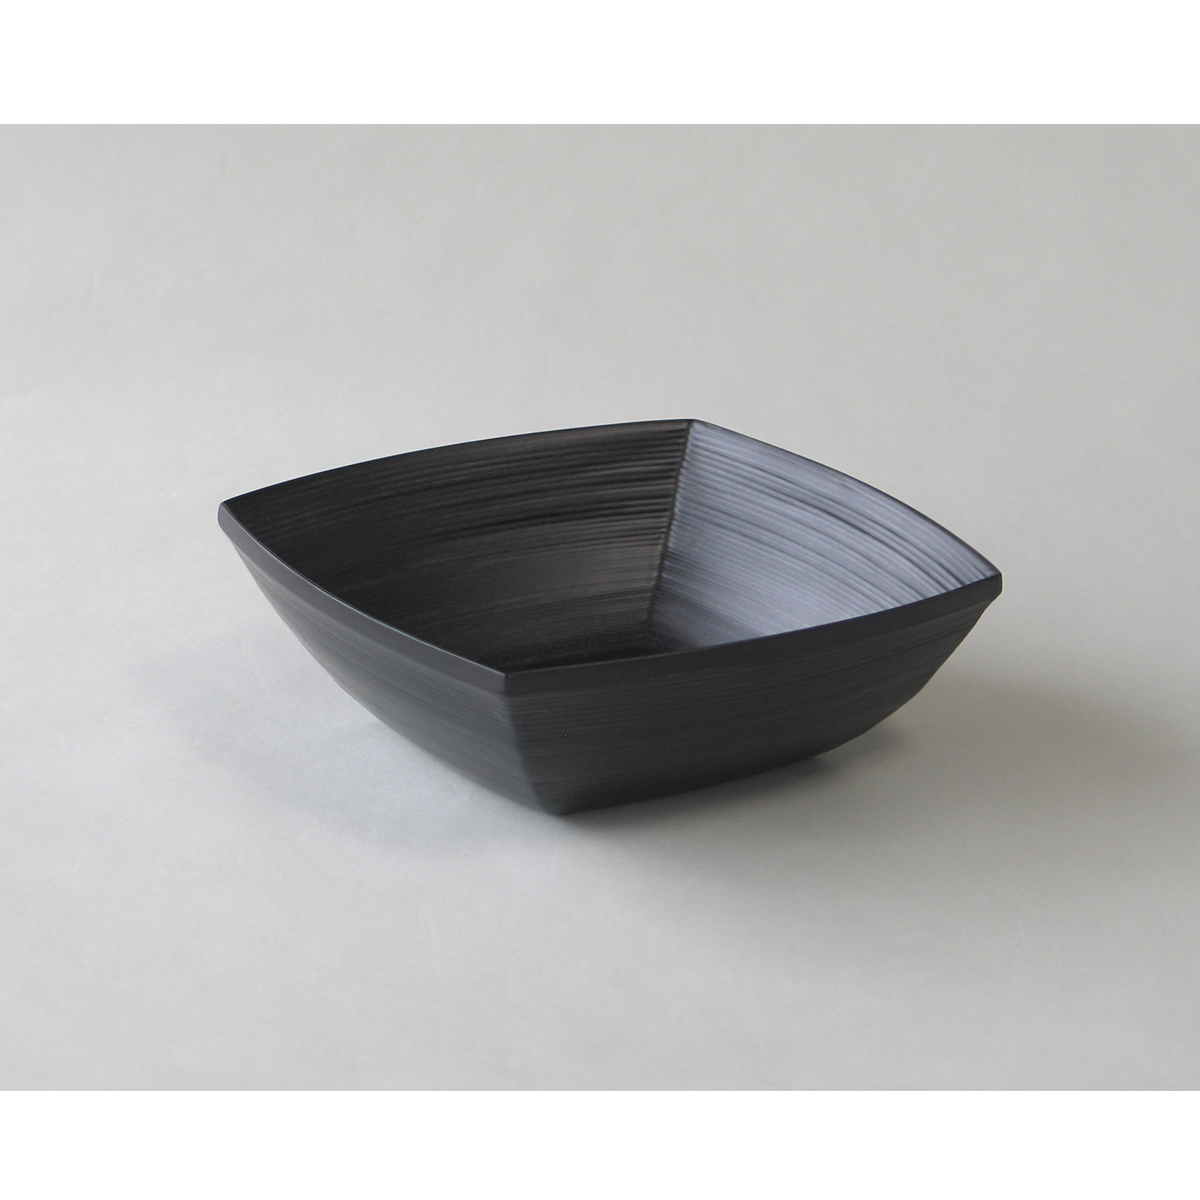 ブナコ TABLEWARE BLACK BOWL #169 square /マルゲリータ